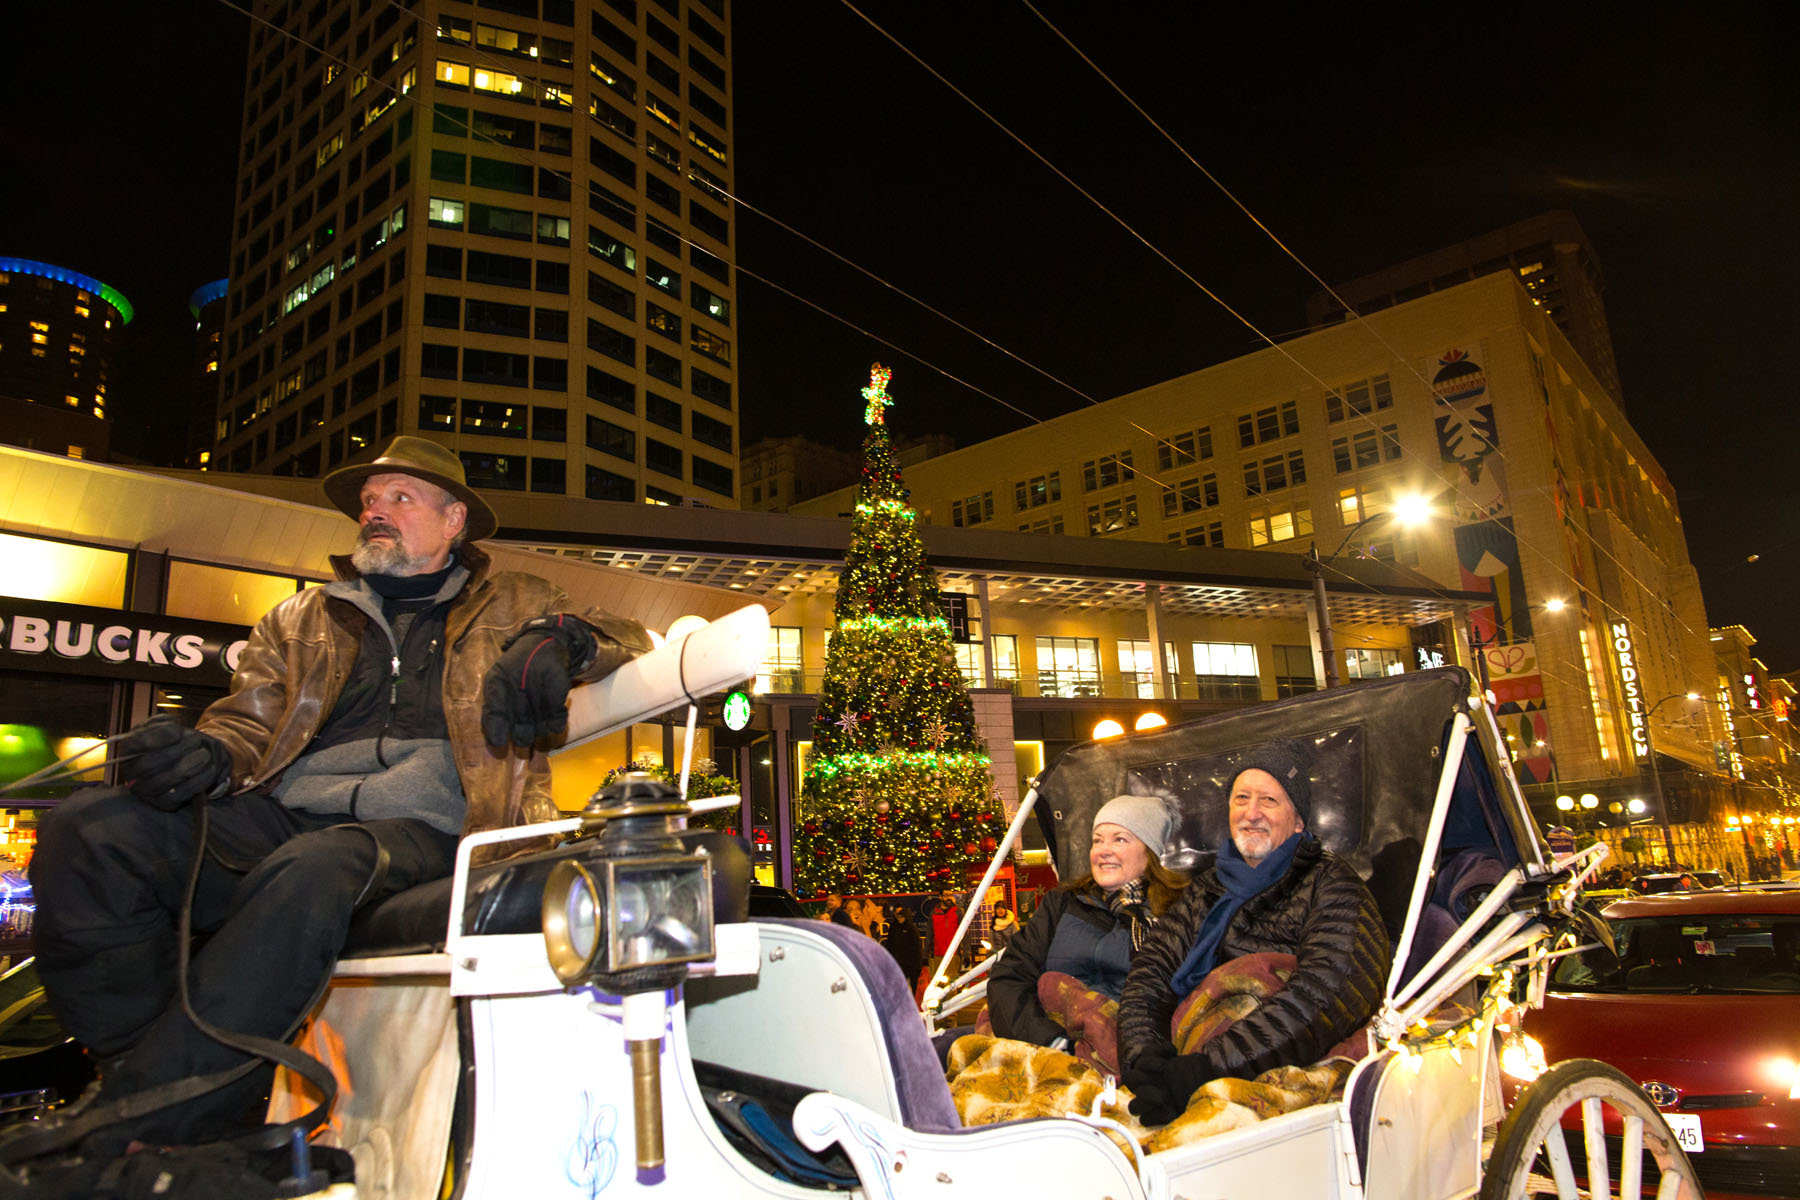 """""""He's all about making my dreams come true,{quote} Anita Emde says of her husband Mick Emde, both from Redmond, WA.  {quote}I've always wanted to be in a horse-drawn carriage."""" The two enjoy a horse and carriage ride around the Westlake Center area in Seattle, WA on December 9, 2017. """"It was romantic. It was warm. He provided a nice blanket,"""" she says. (© Karen Ducey)"""